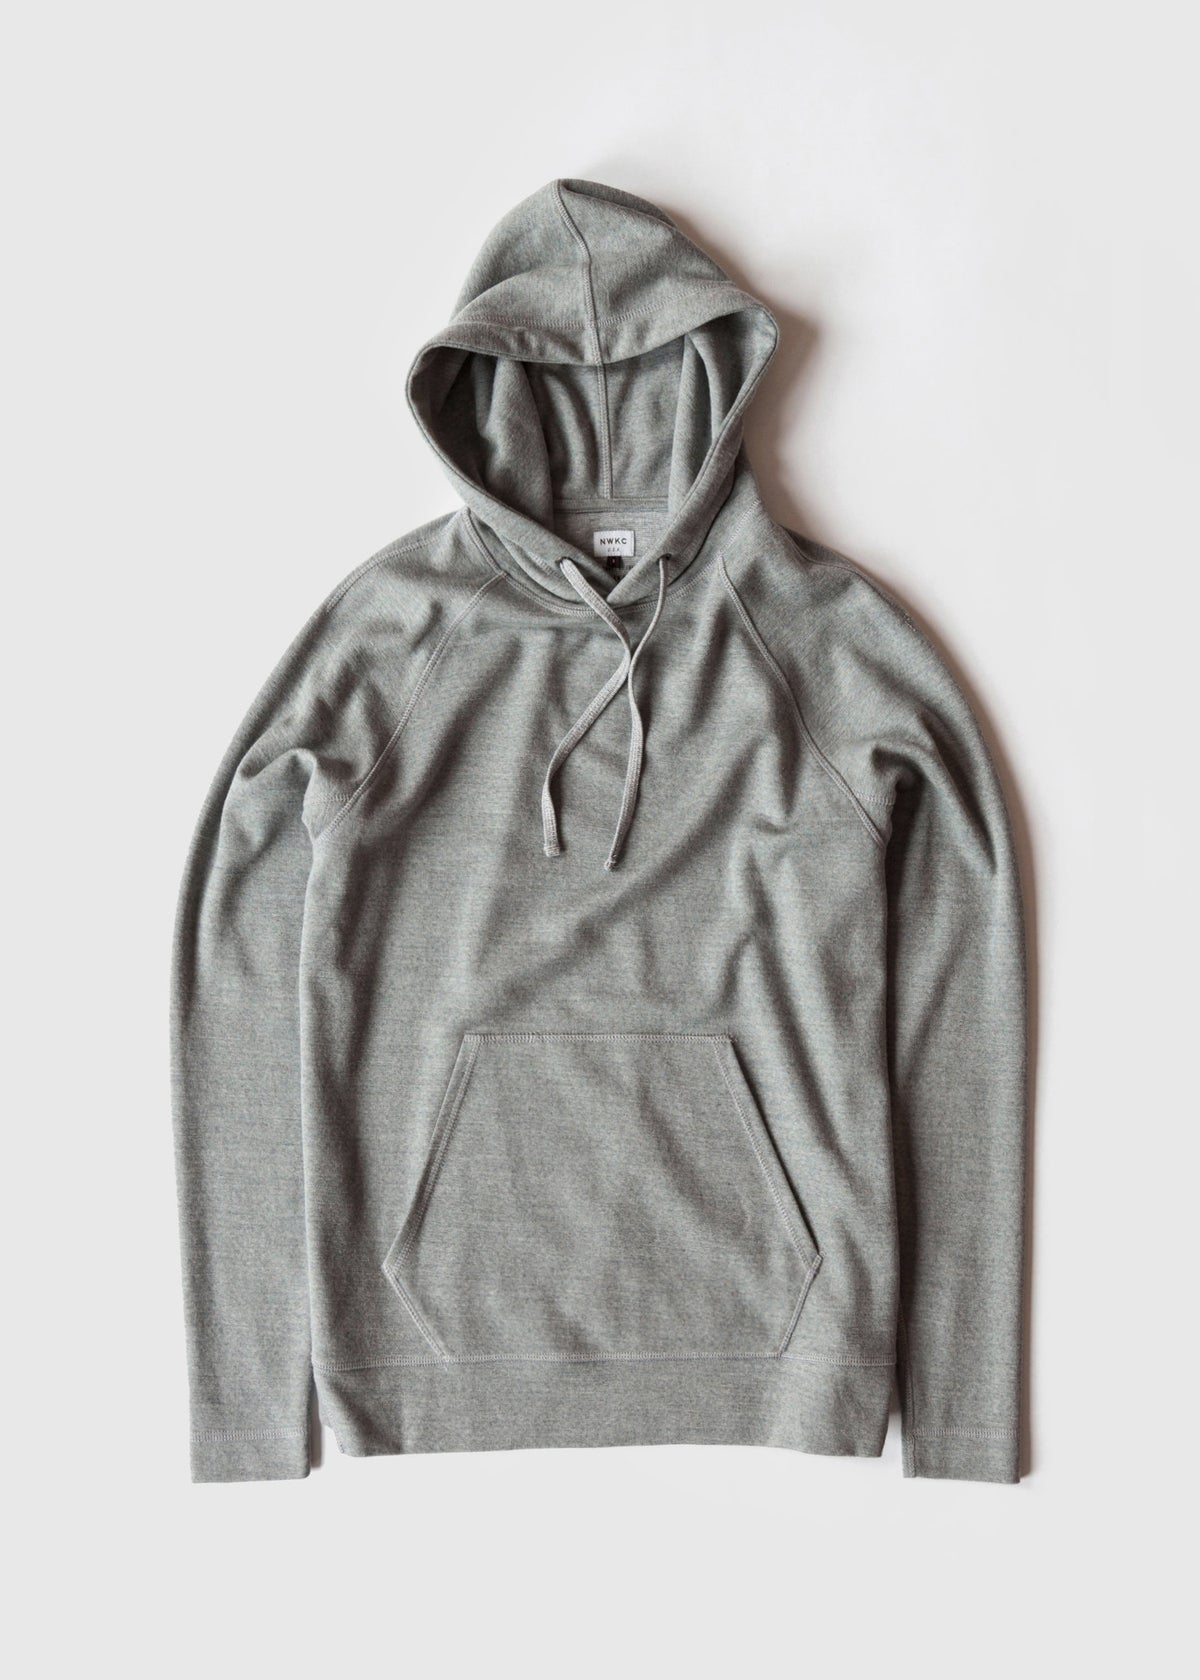 003 - PULLOVER - FEATHER GRAY - Wilson & Willy's - MPLS Neighbor Goods